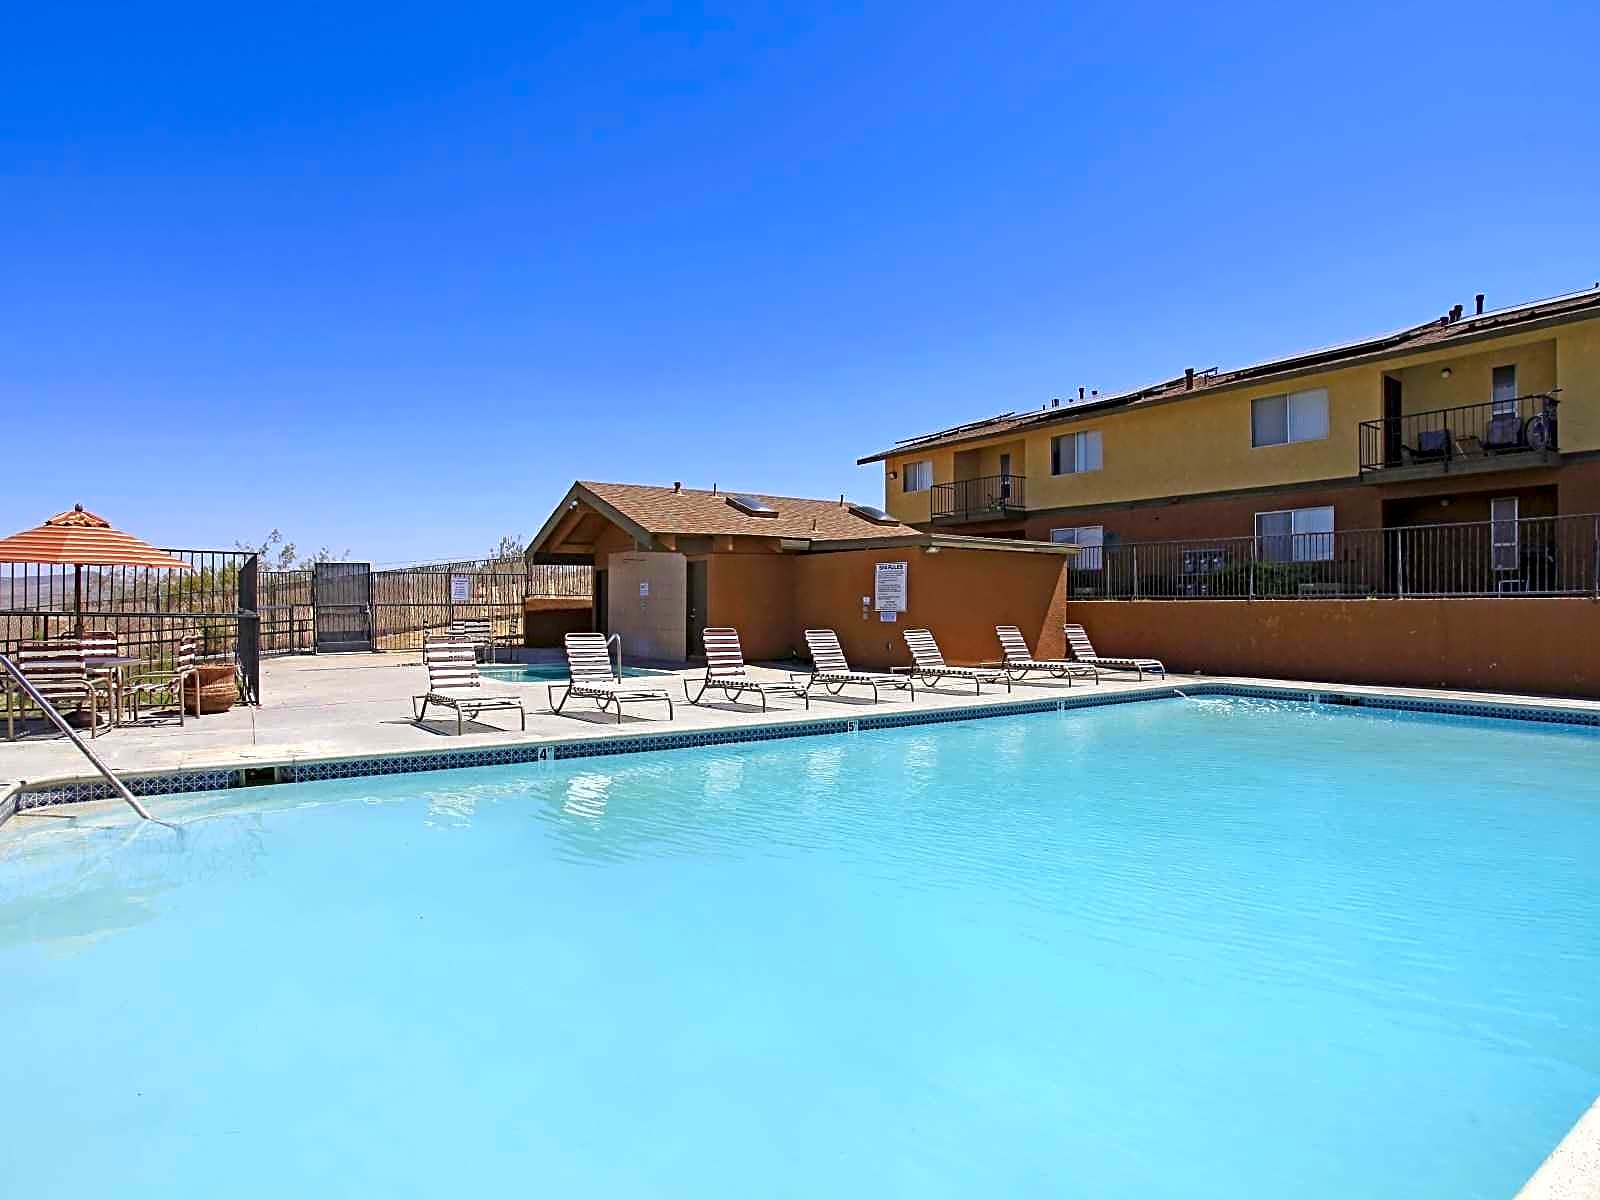 Sunrise Vista Apartments for rent in Barstow